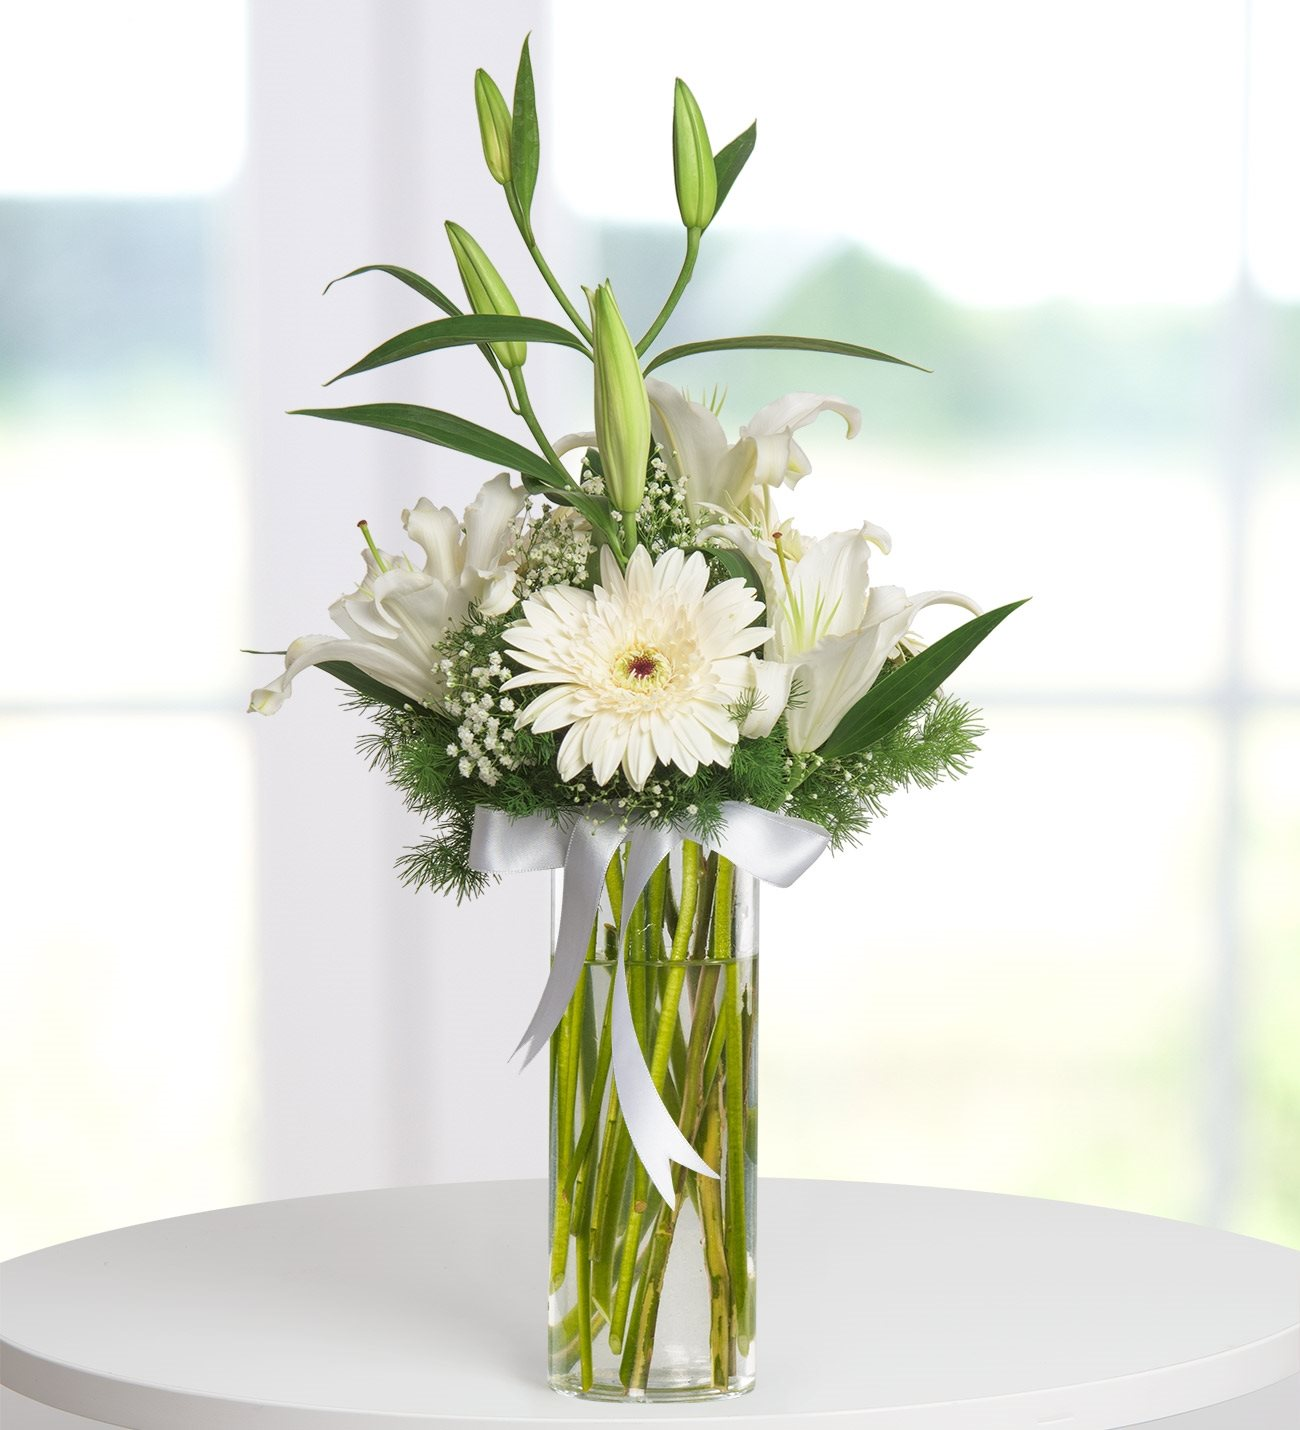 Famous Flower Bouquet Eng Sub Images Images For Wedding Gown Ideas